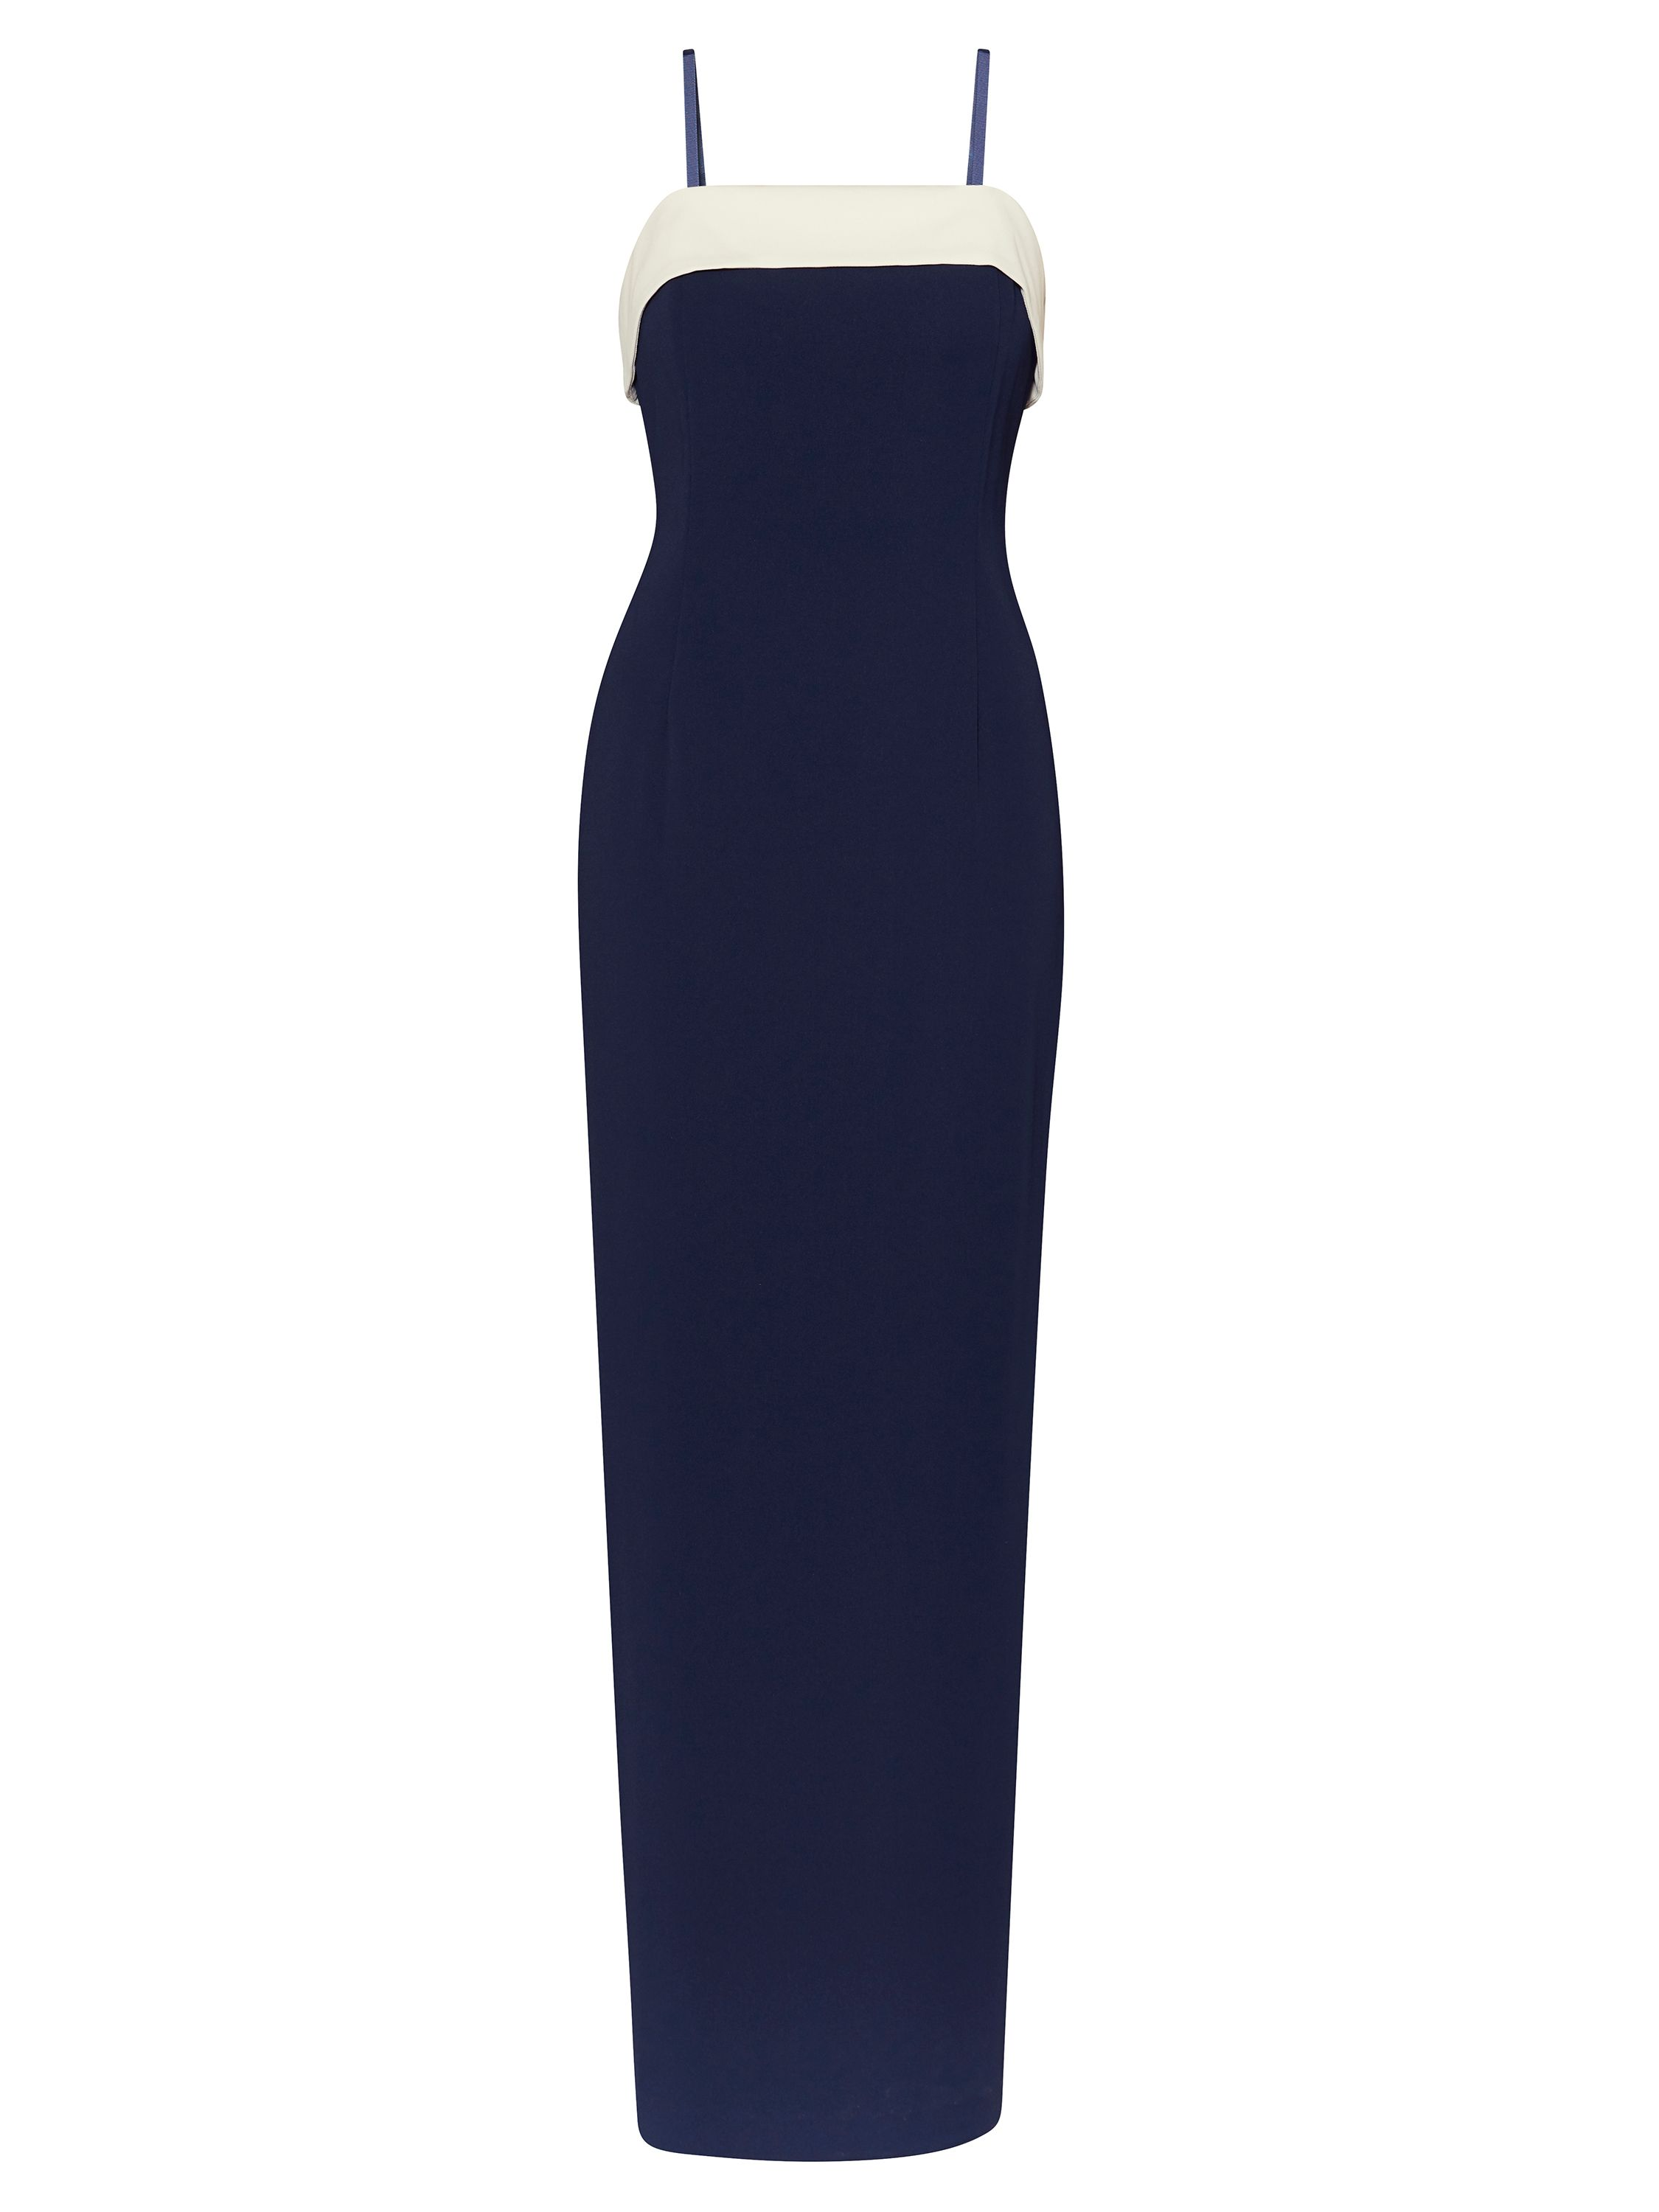 Gina Bacconi Moss crepe maxi dress with contrast band, Blue